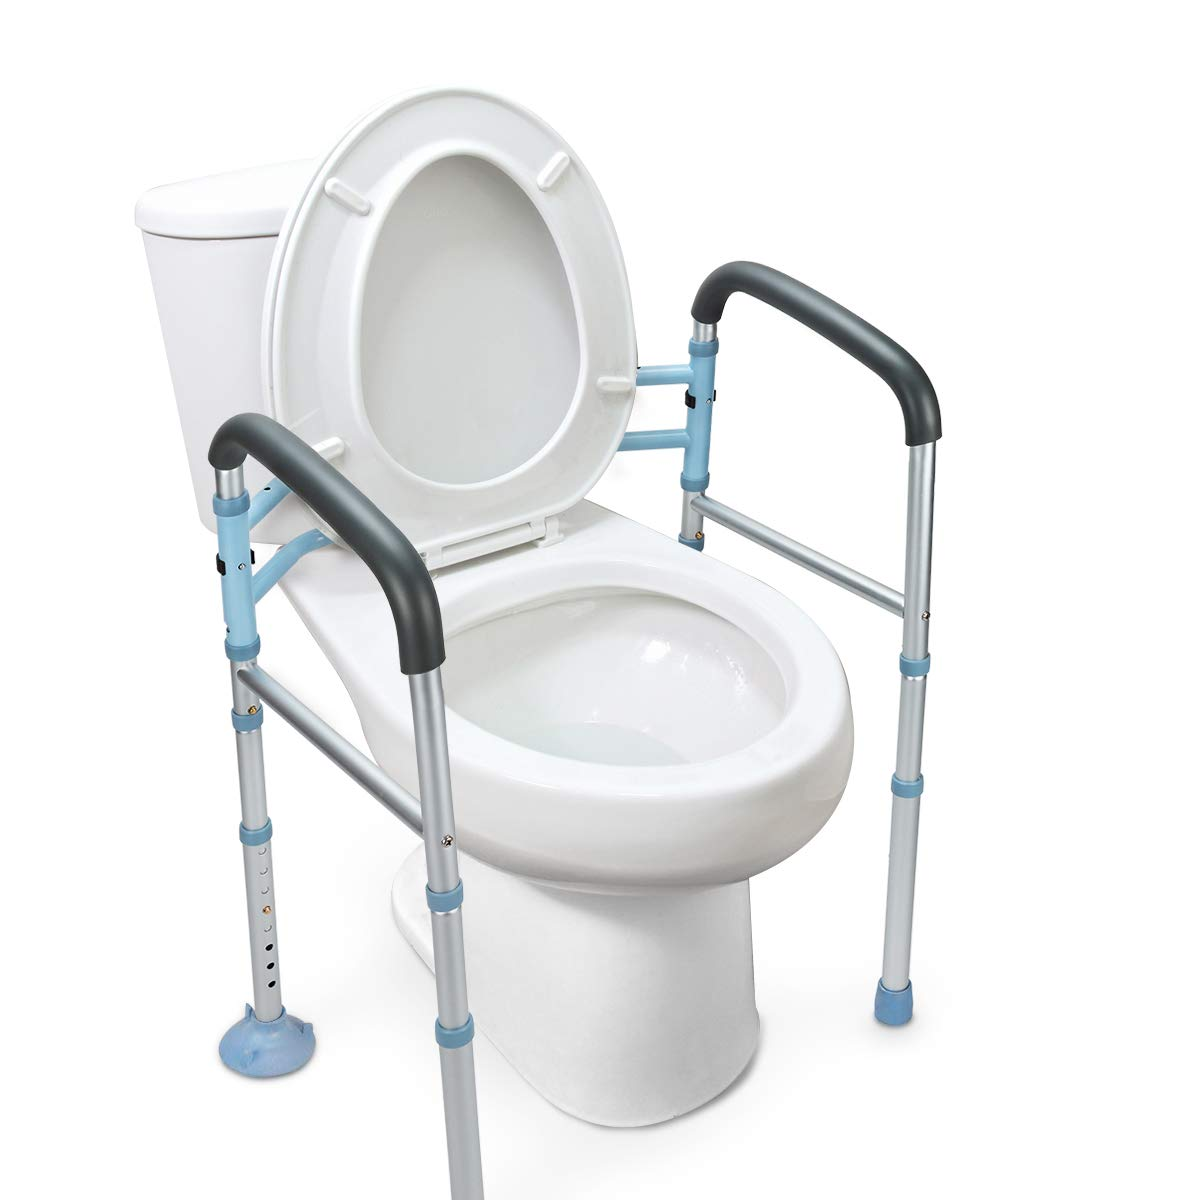 Astonishing Oasisspace Stand Alone Toilet Safety Rail Heavy Duty Medical Toilet Safety Frame For Elderly Handicap And Disabled Adjustable Bathroom Toilet Ibusinesslaw Wood Chair Design Ideas Ibusinesslaworg